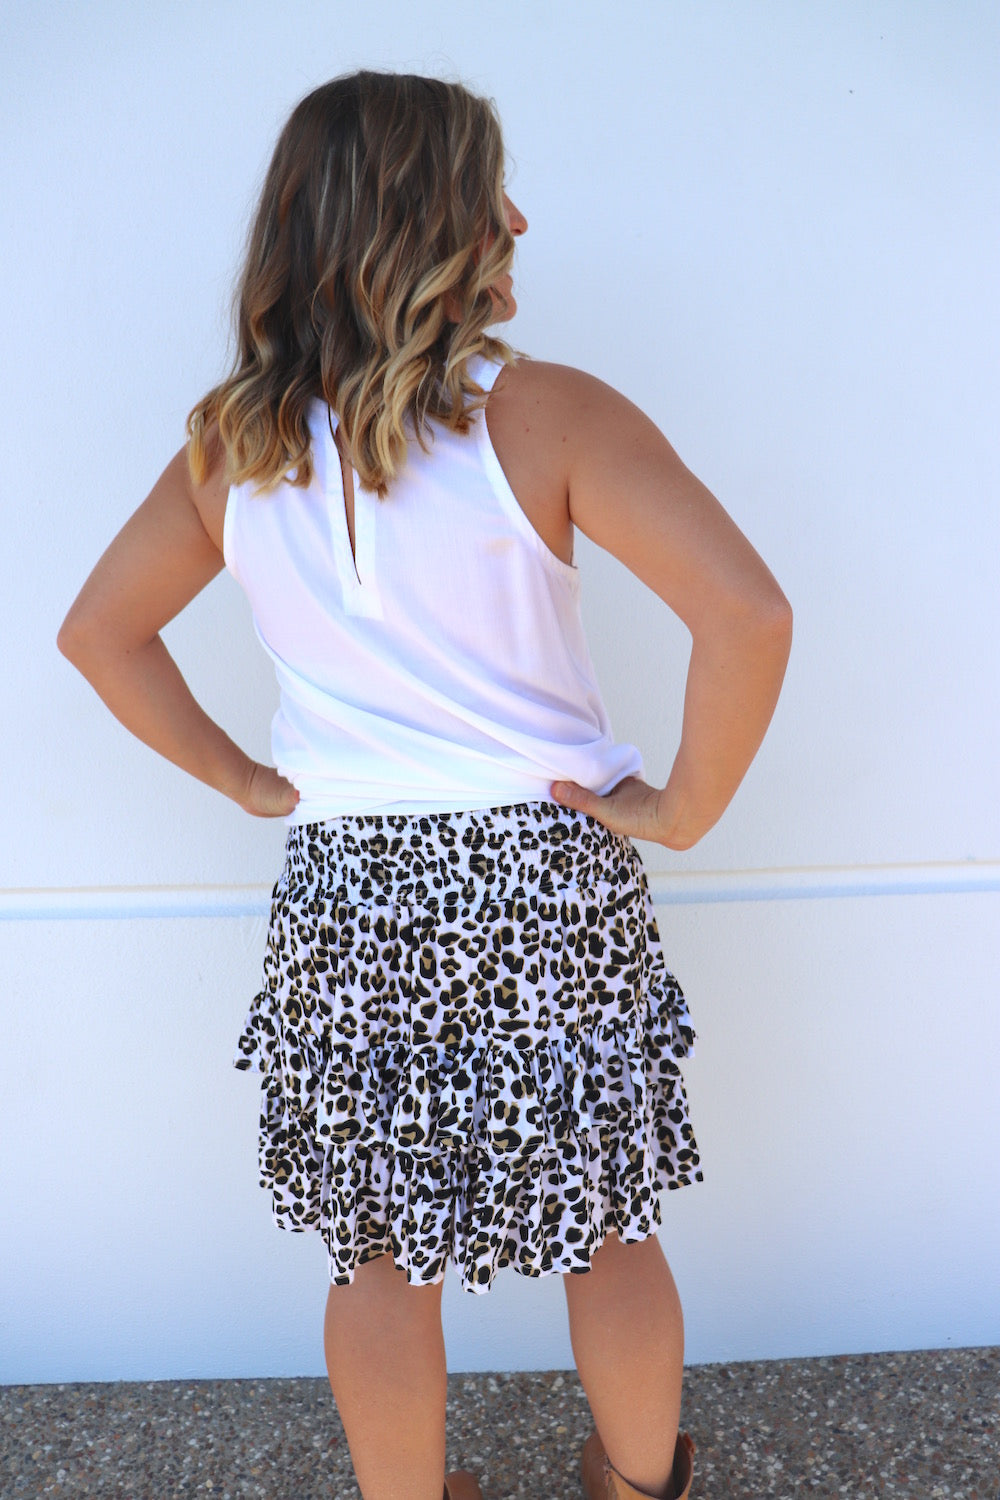 Ripple Effect Skirt In Leopard